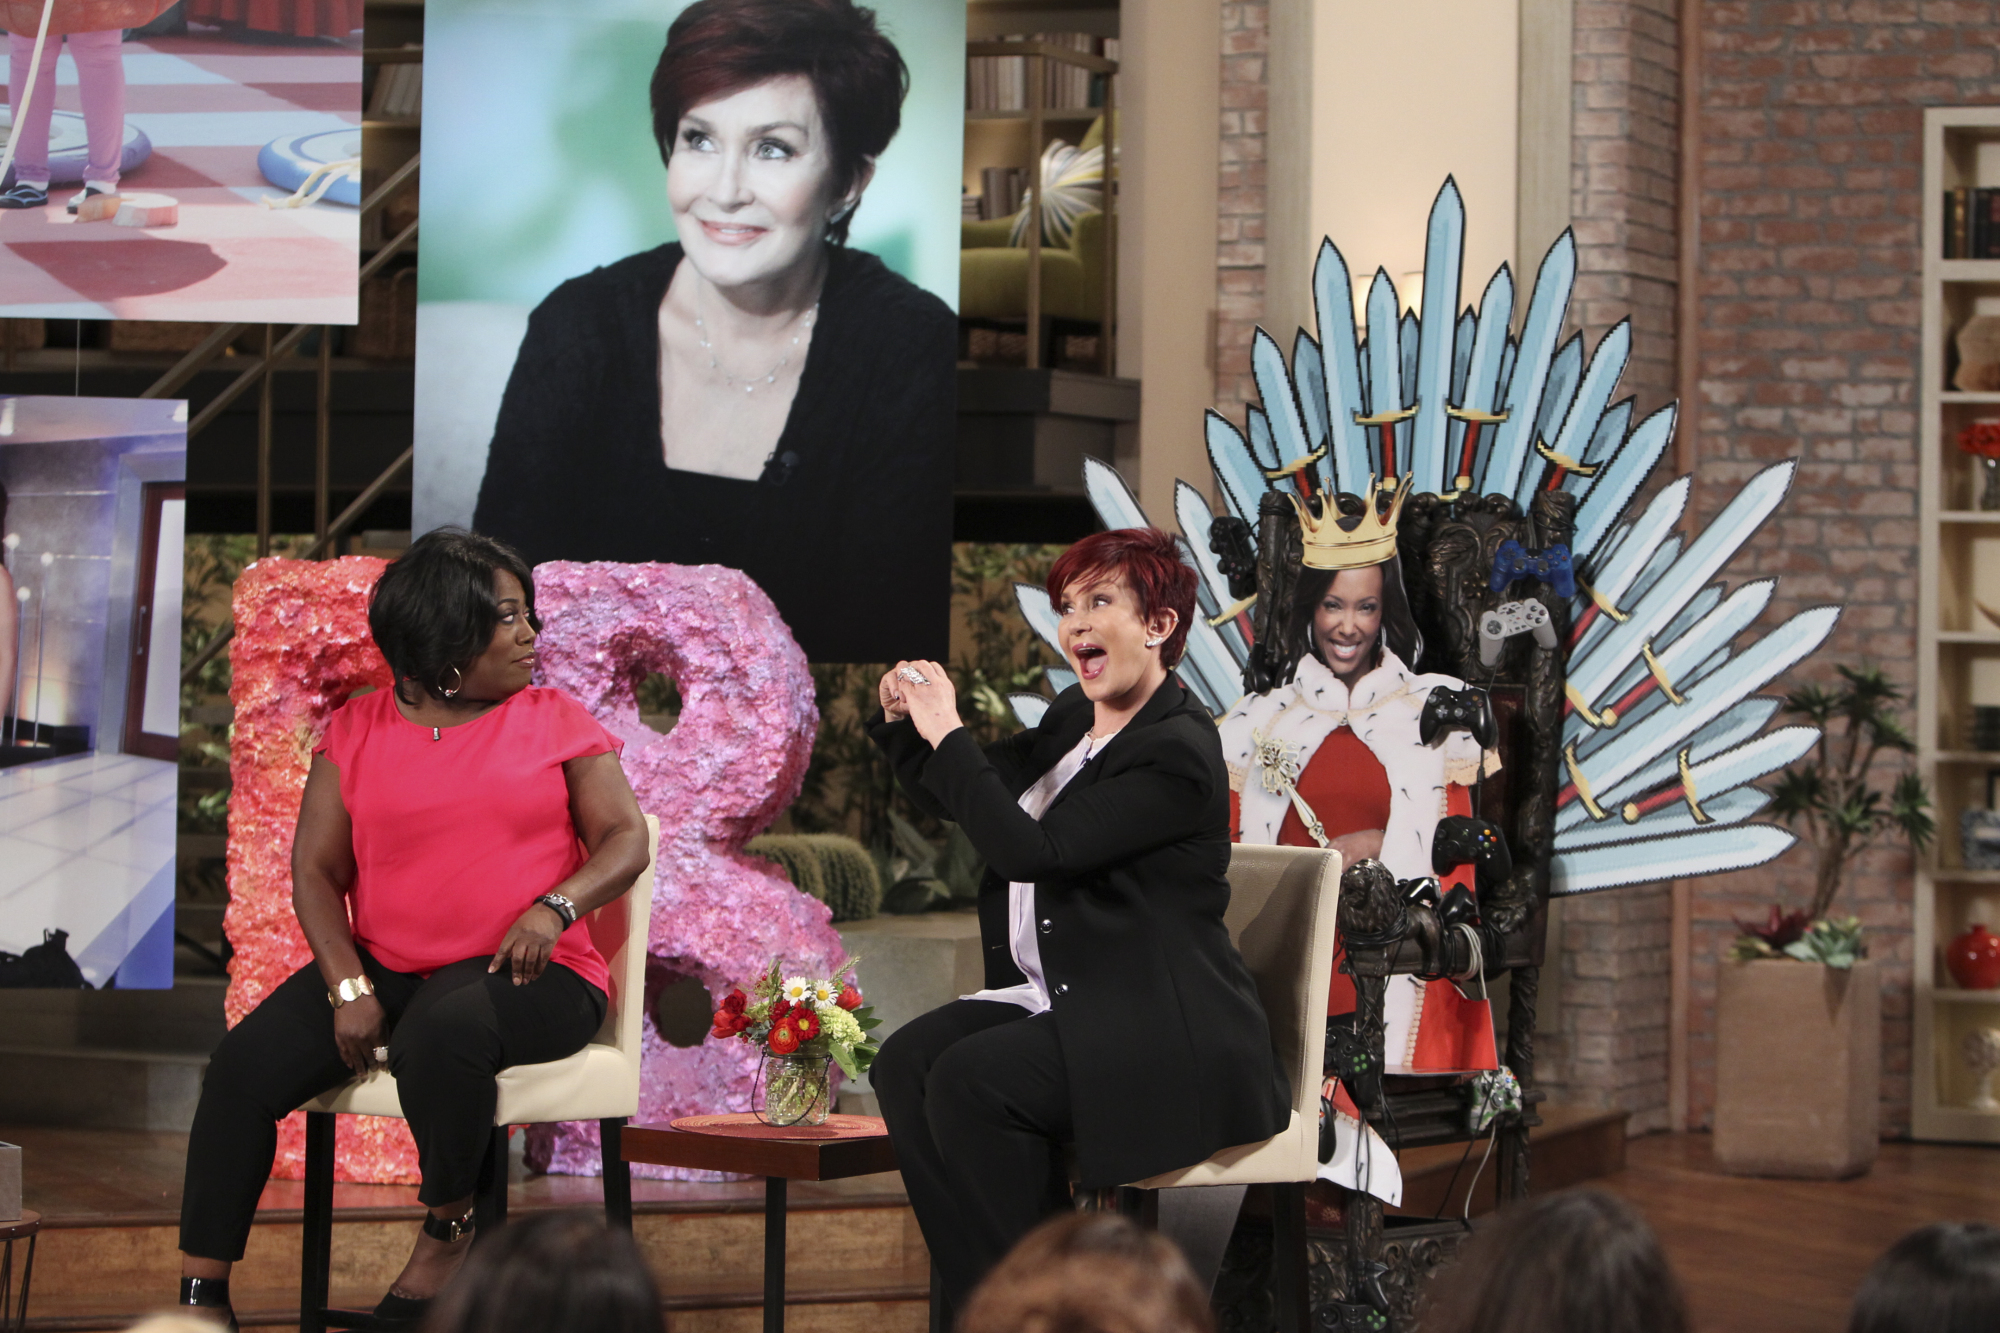 Sheryl Underwood and Sharon Osbourne Get Ready to Enter the Big Brother House